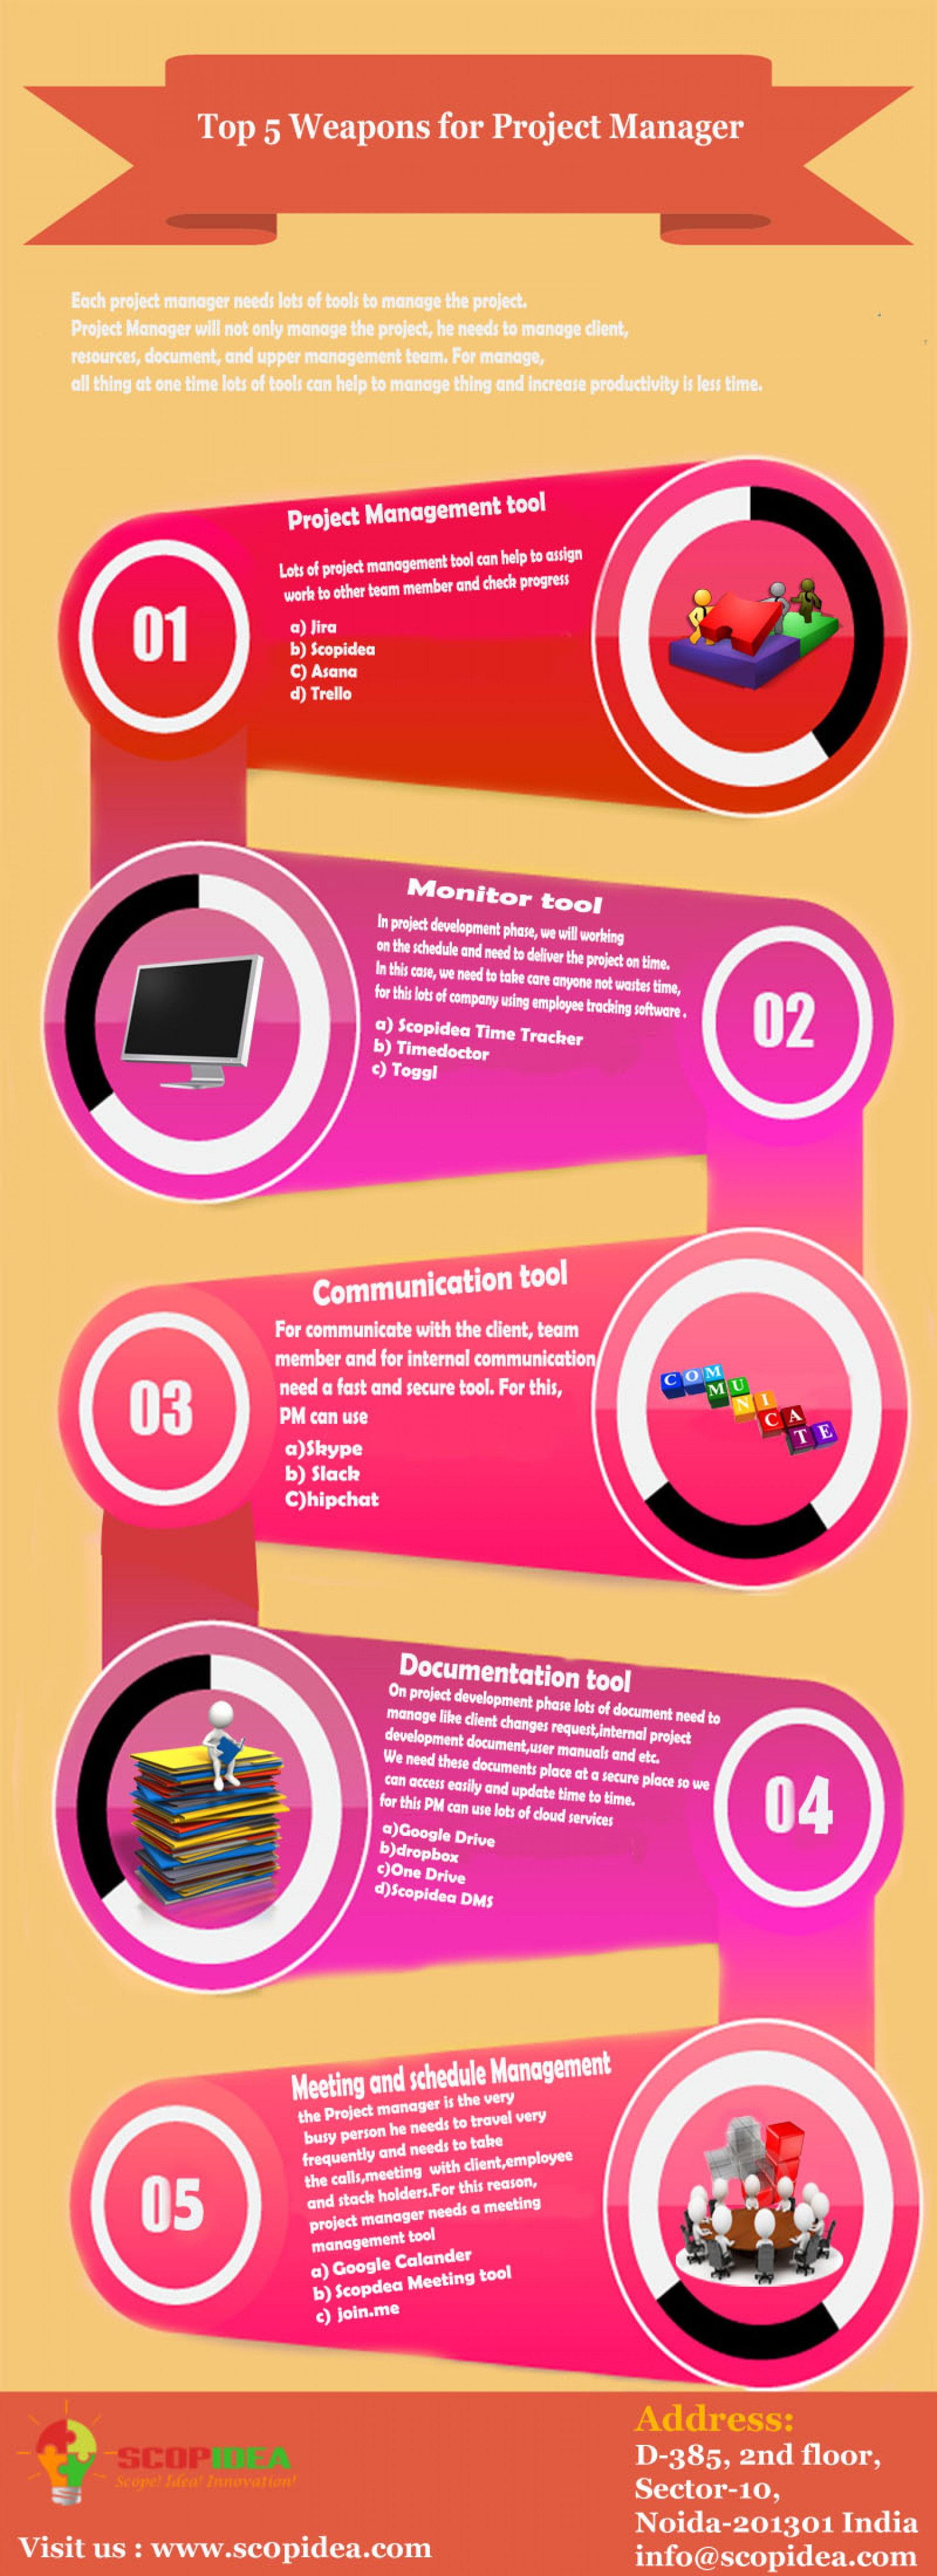 Top 5 wepons for project manager Infographic